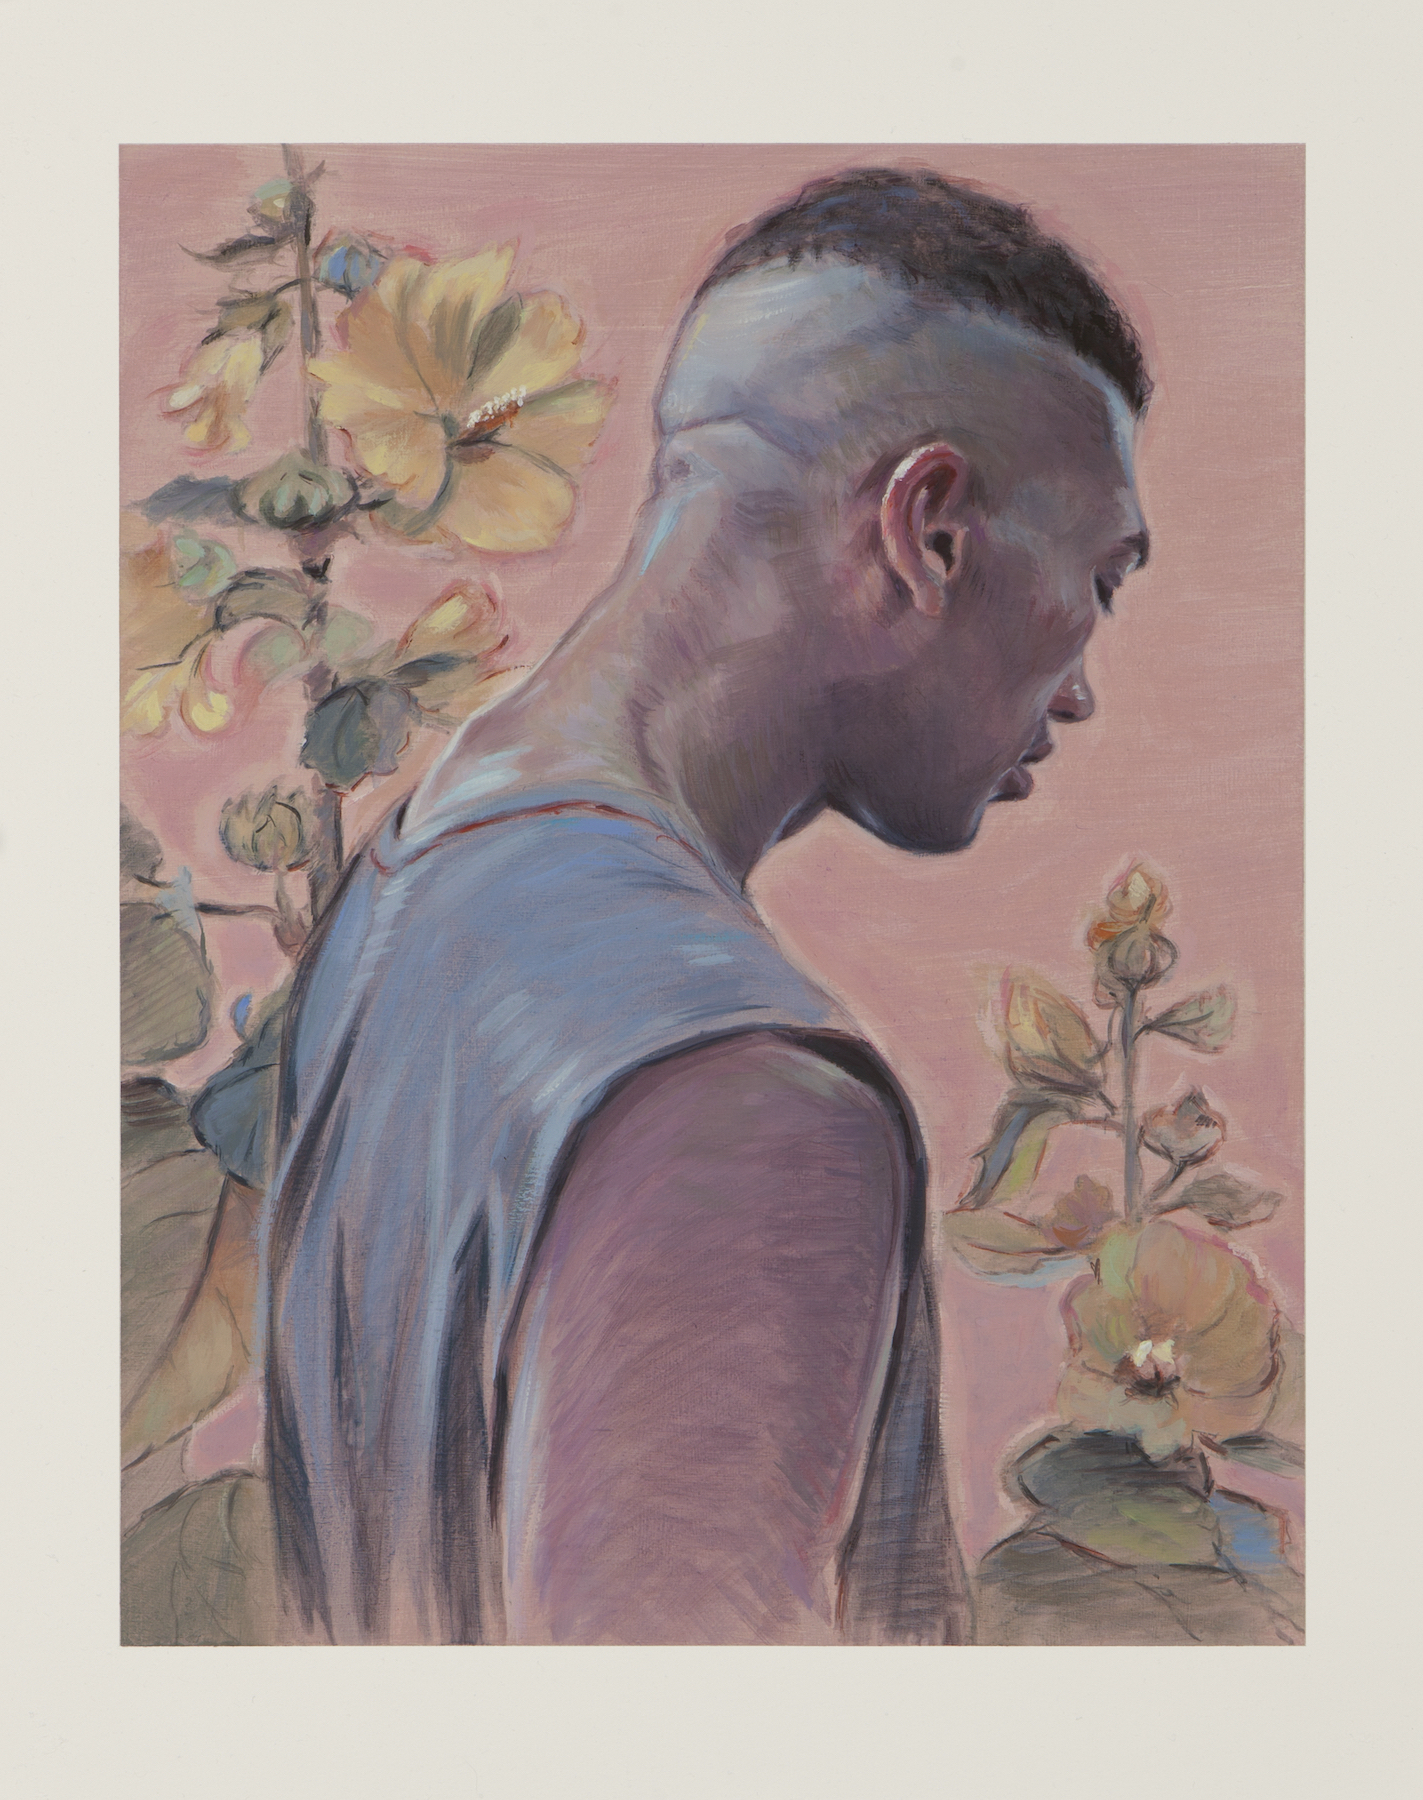 Kris Knight, Golden Hollyhock, 2017,oil on prepared cotton paper, image: 14 x11 inches